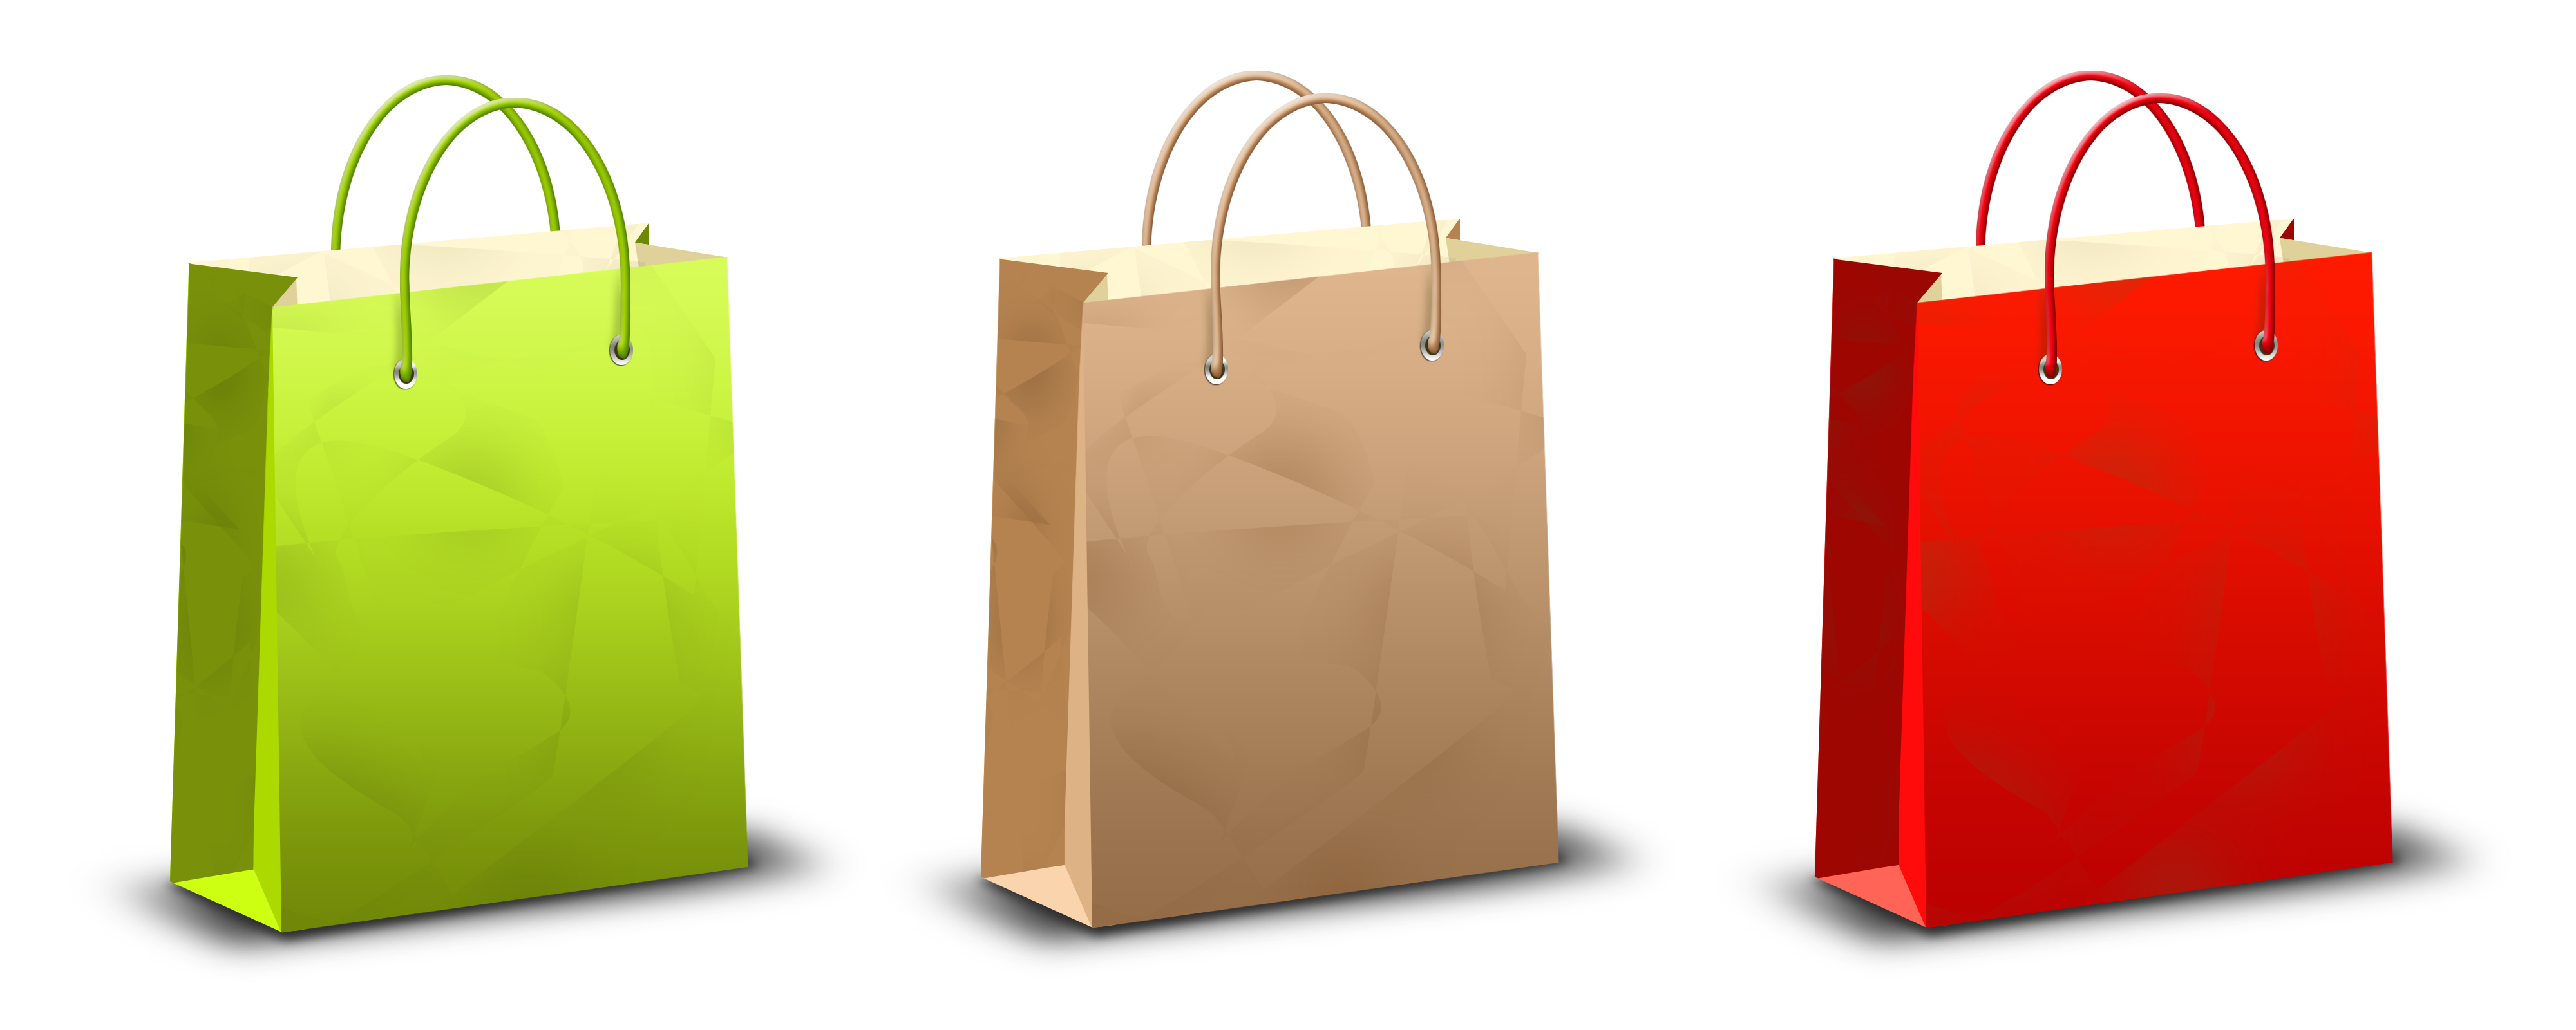 bio fabric manufacturers bio fabric shopping bag bio #20972